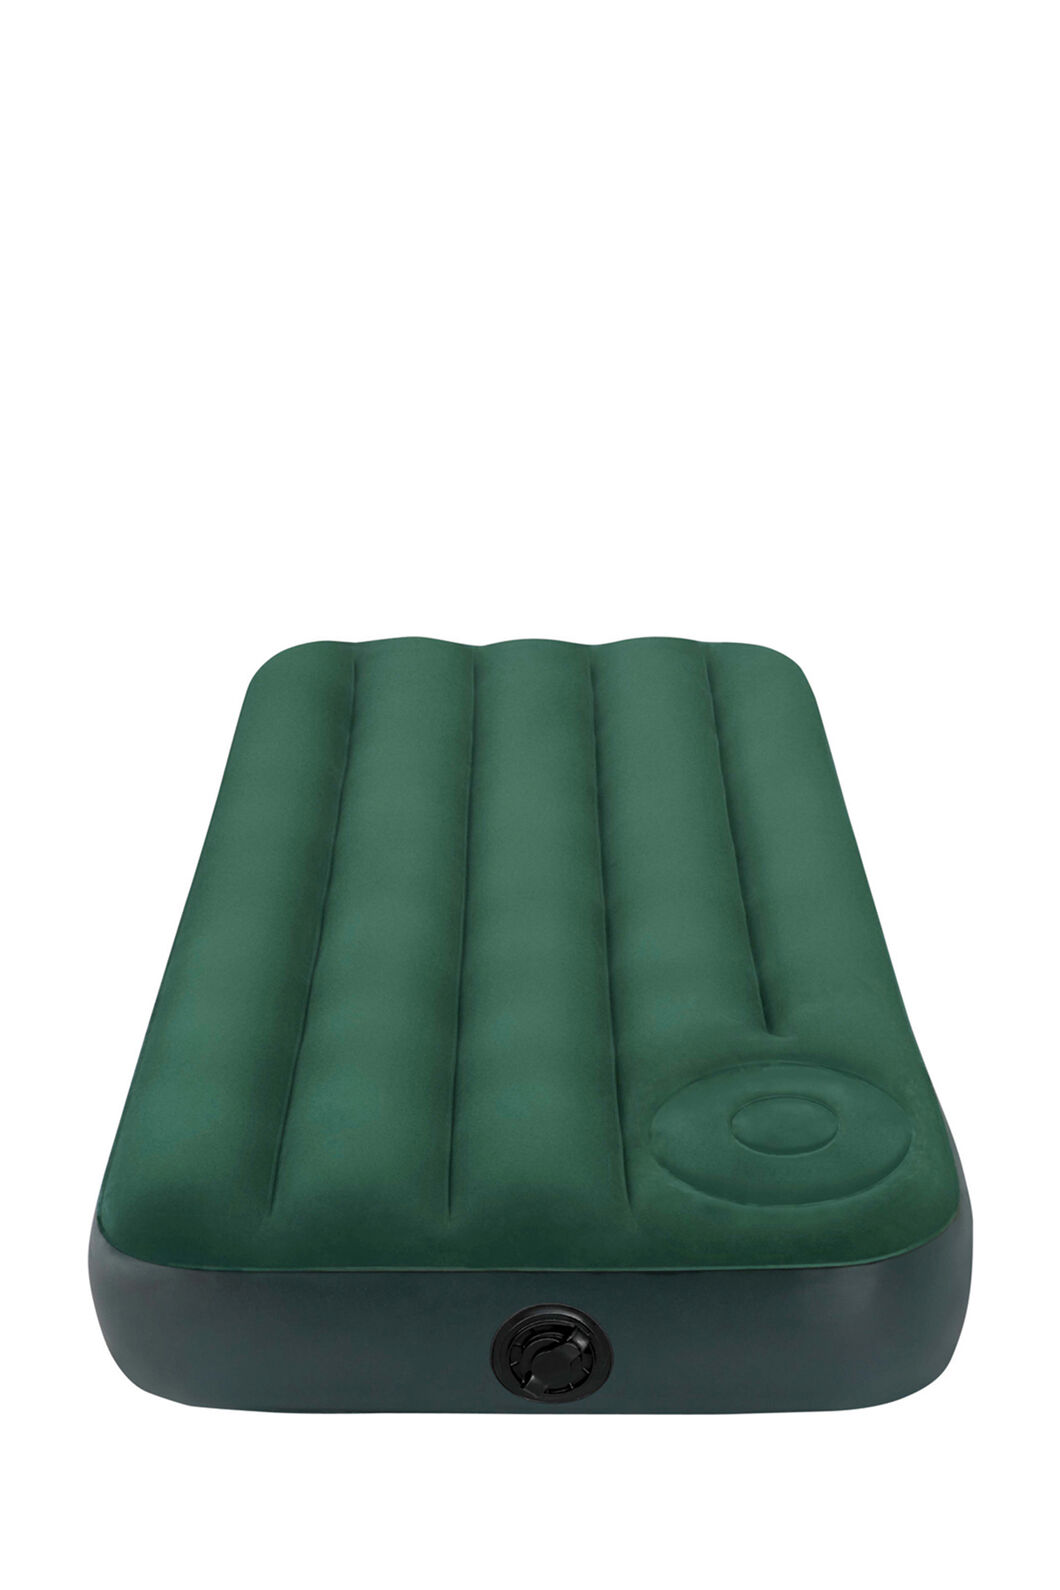 Intex Single Downy Air Bed with Foot Pump, None, hi-res